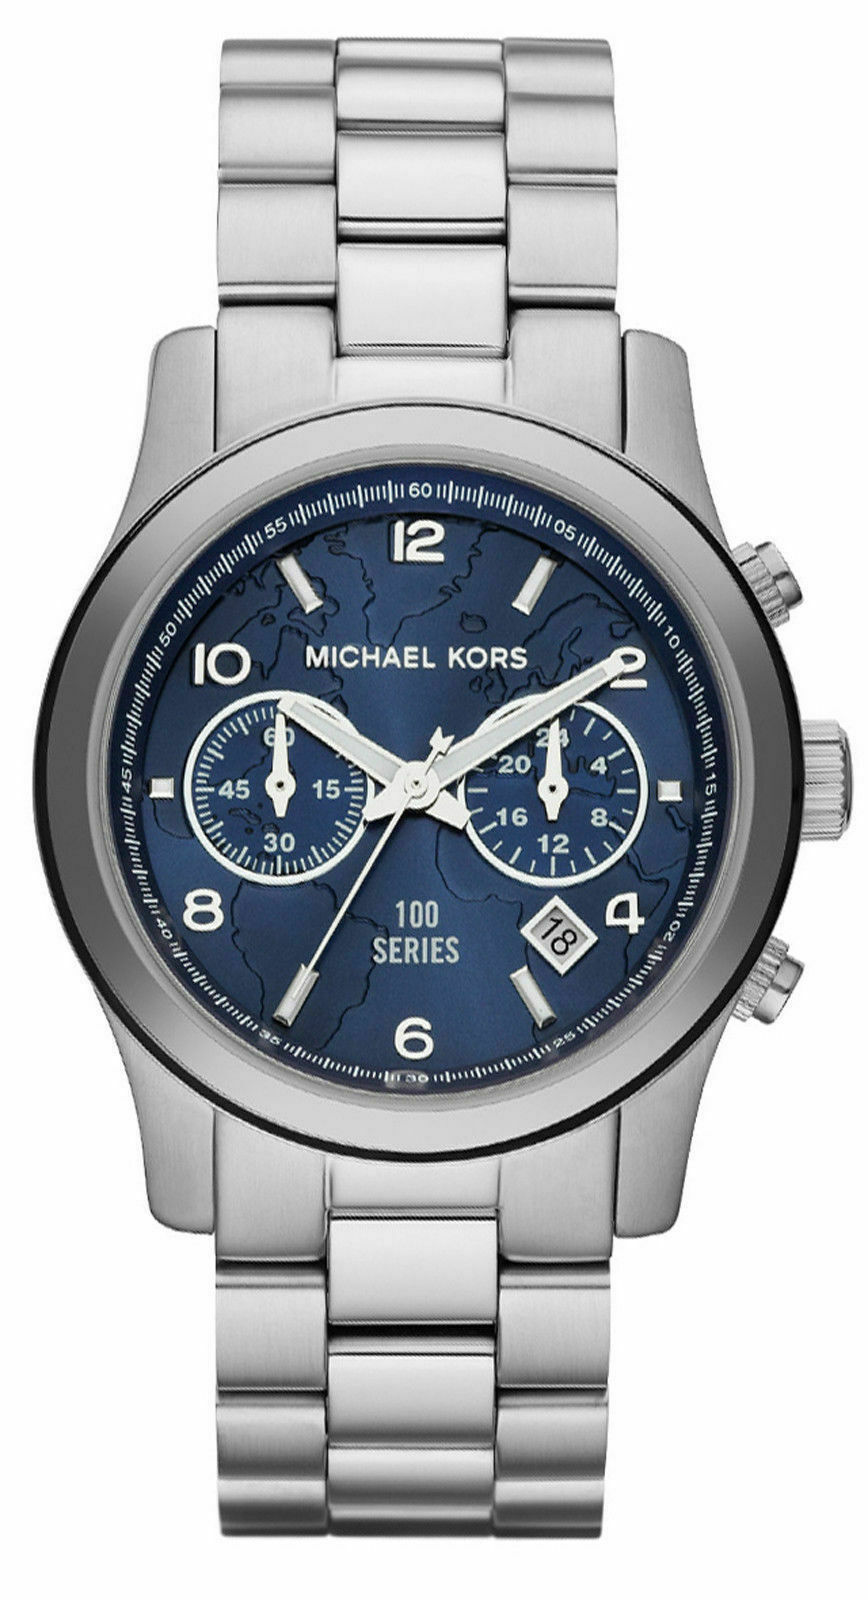 Primary image for Michael Kors MK5814 Runway Stop the Hunger Limited Edition Silver Watch